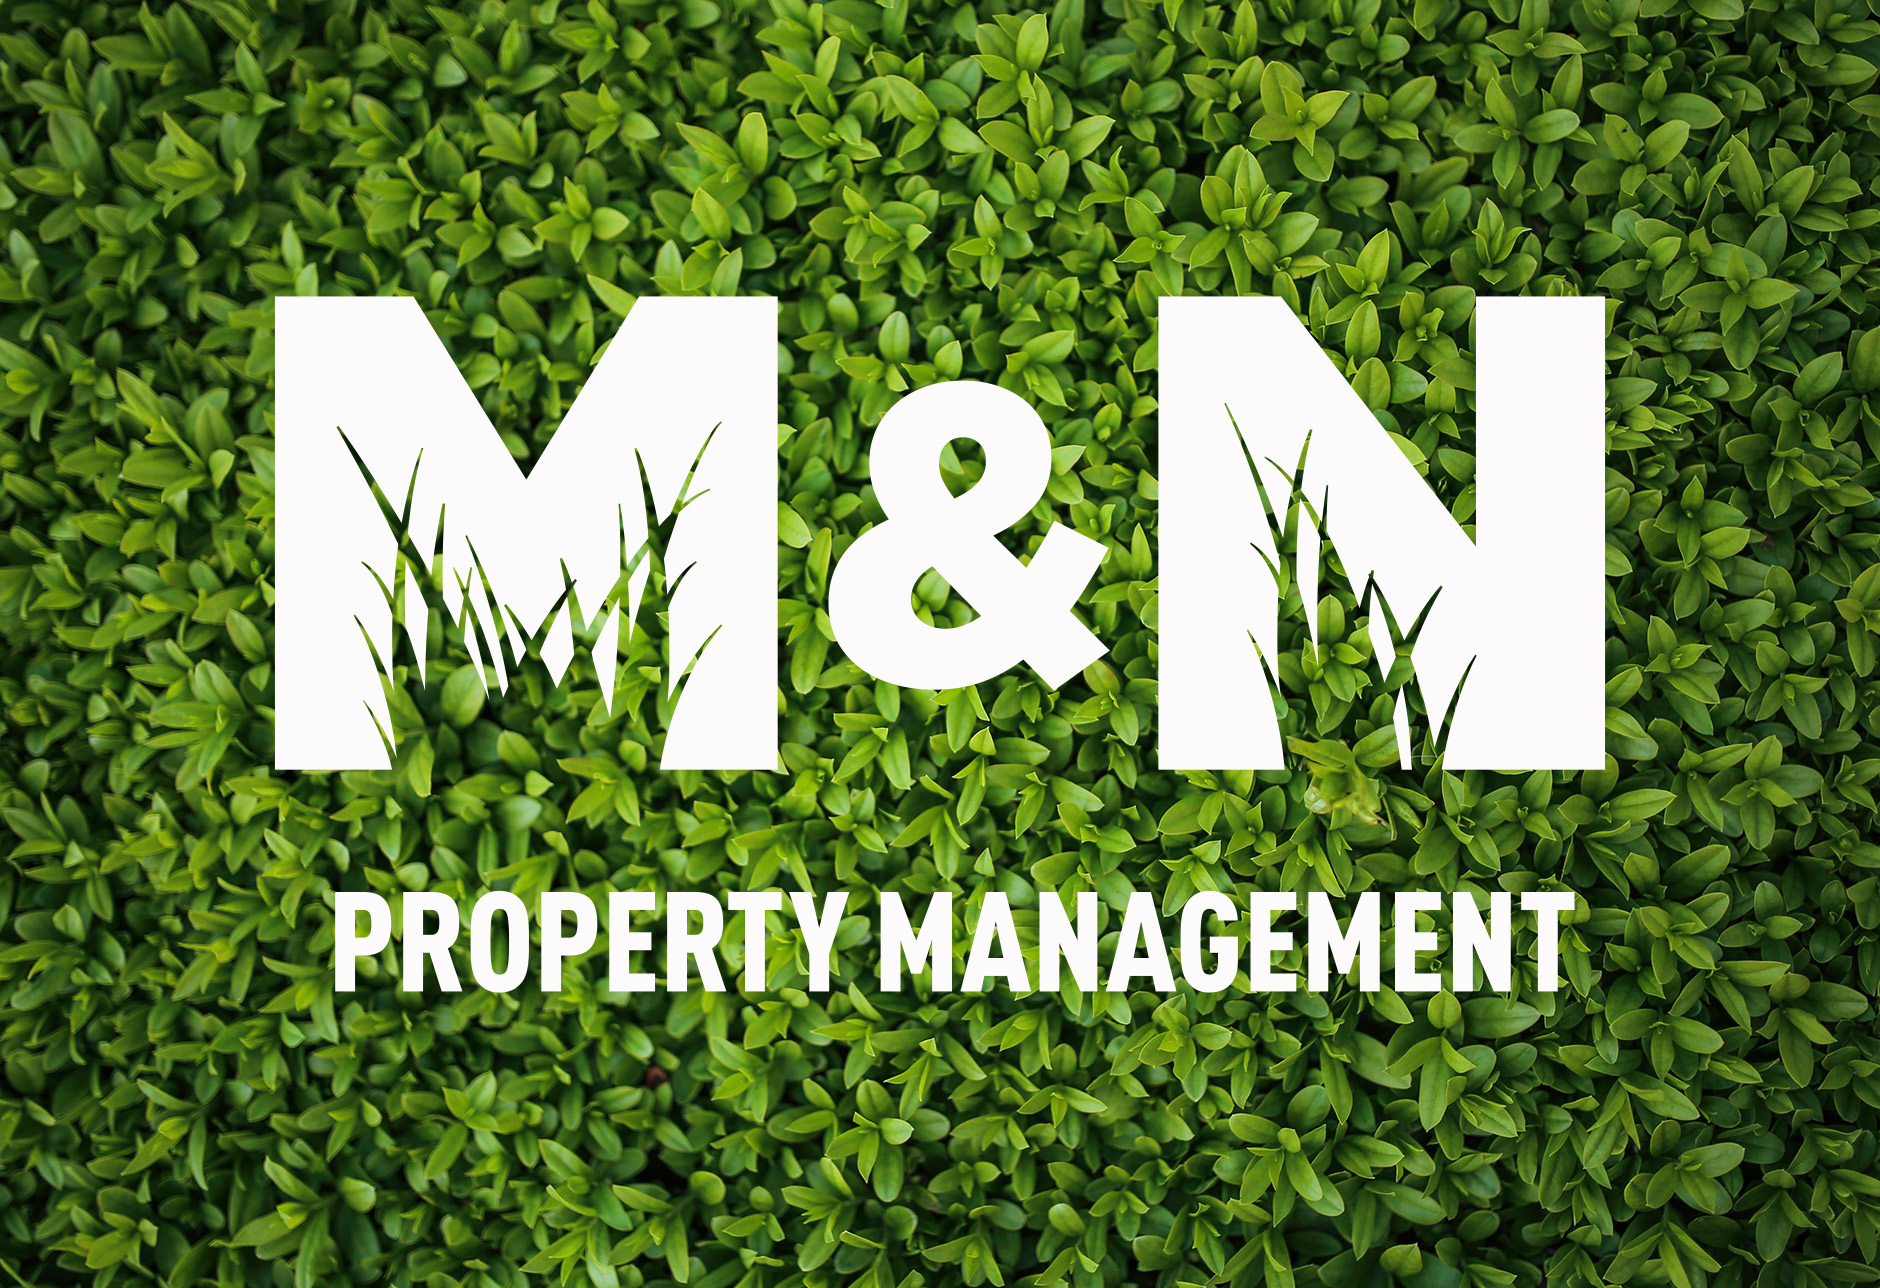 landscaping company logo, grass, negative space, New Jersey, two color